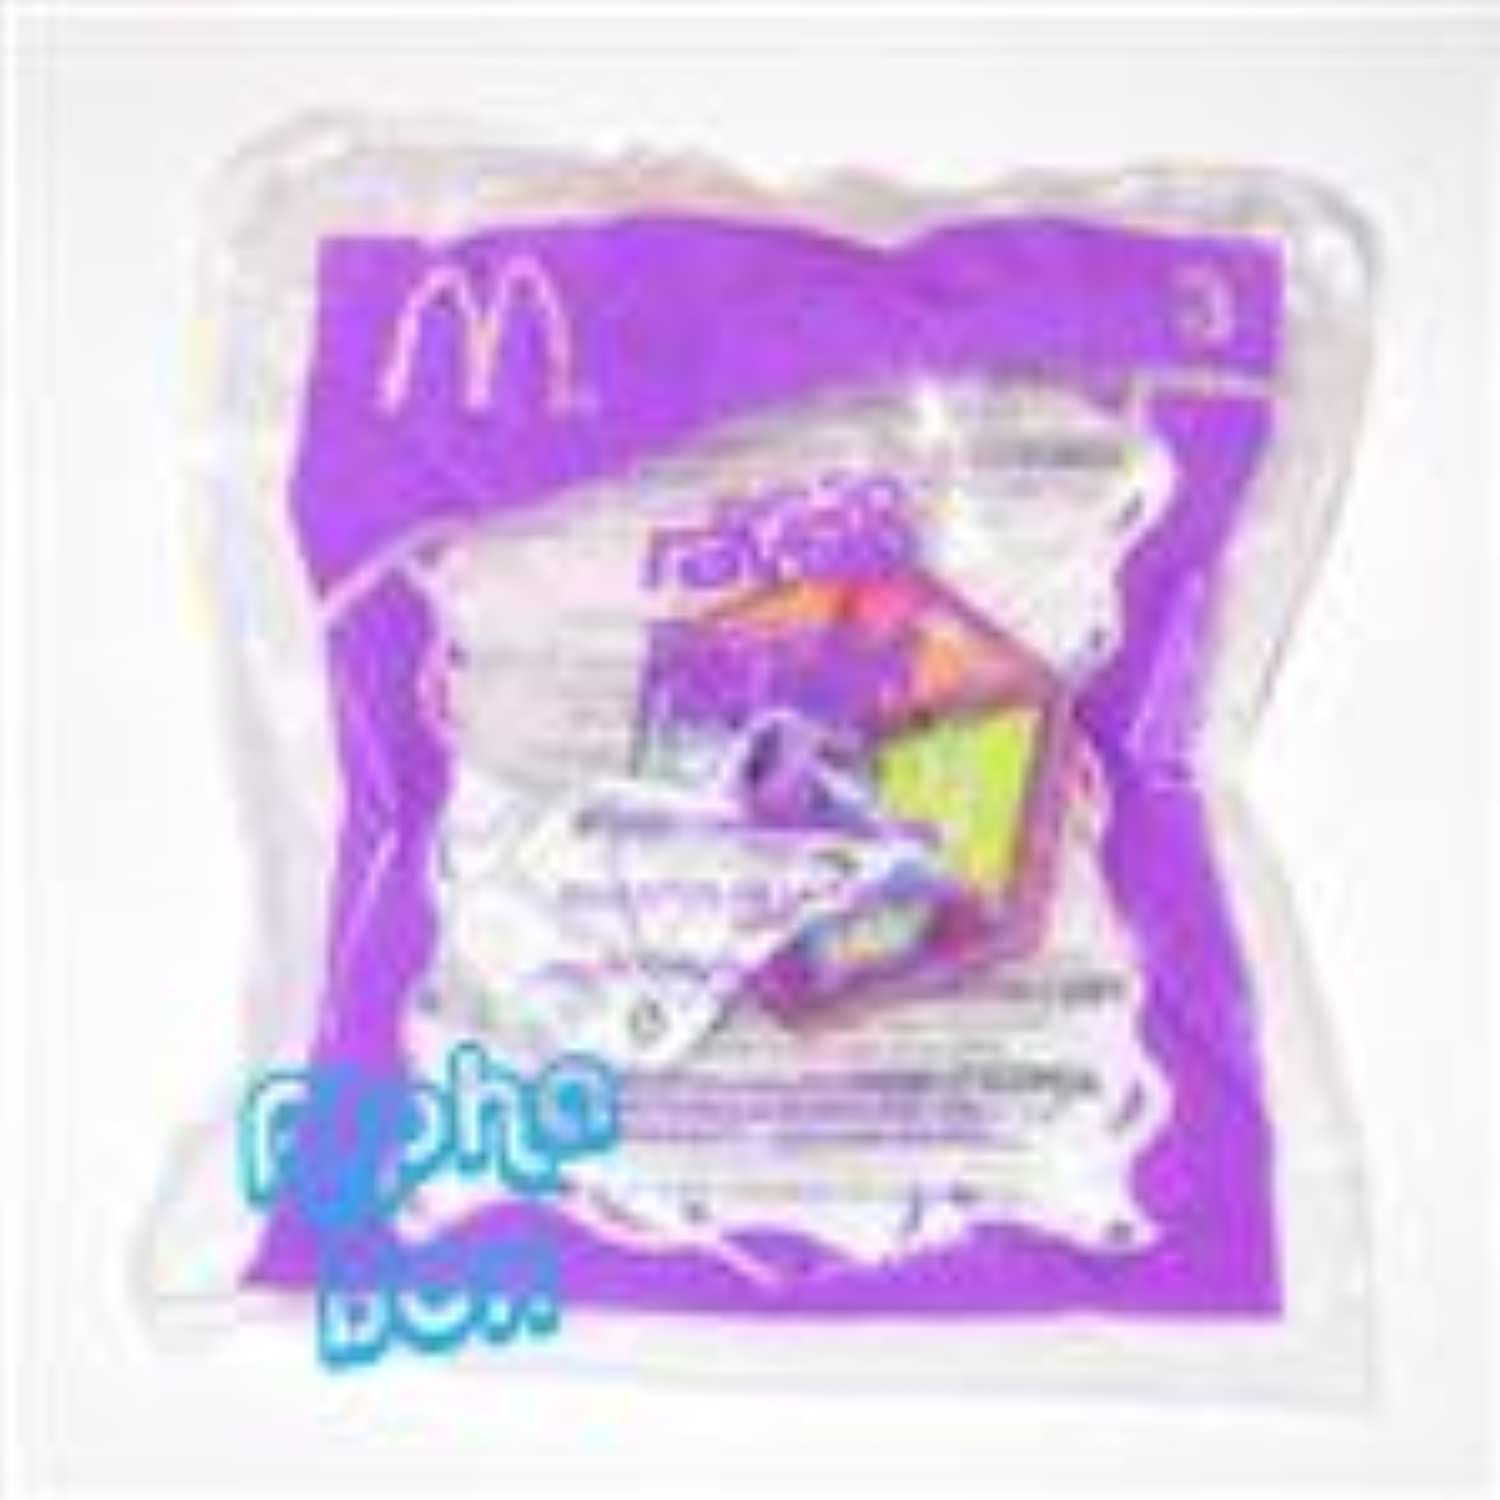 2005 McDonalds Happy Meal Toy Disney That's So Raven  3 Spin Your Fortune by McDonald's